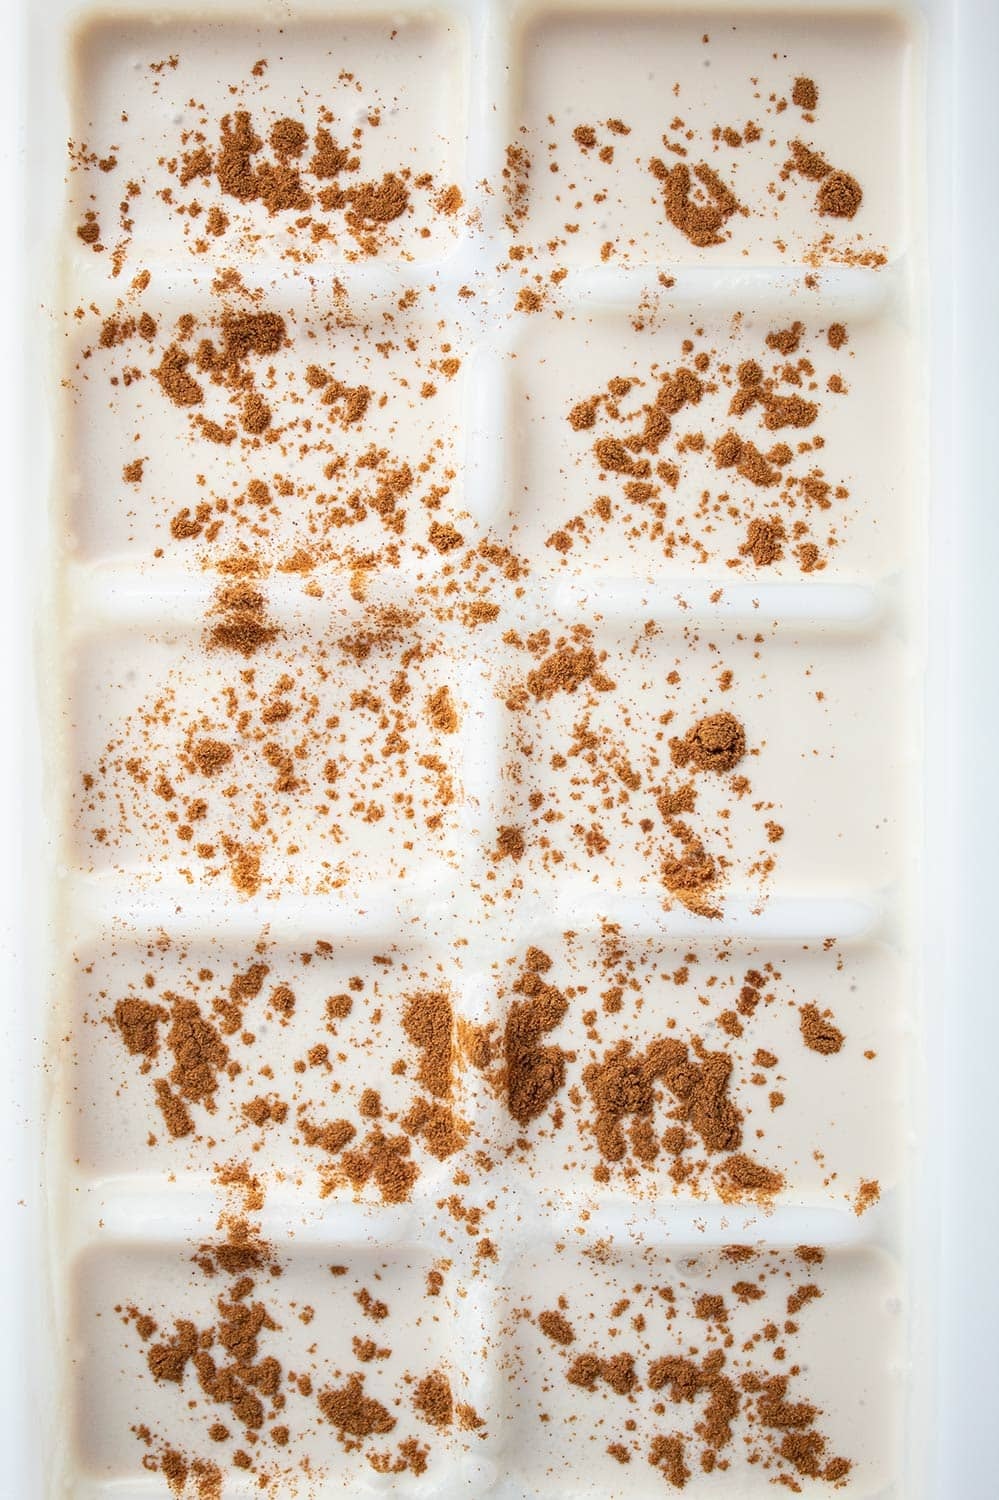 keto iced coffee ice cubes in a tray with cinnamon on top